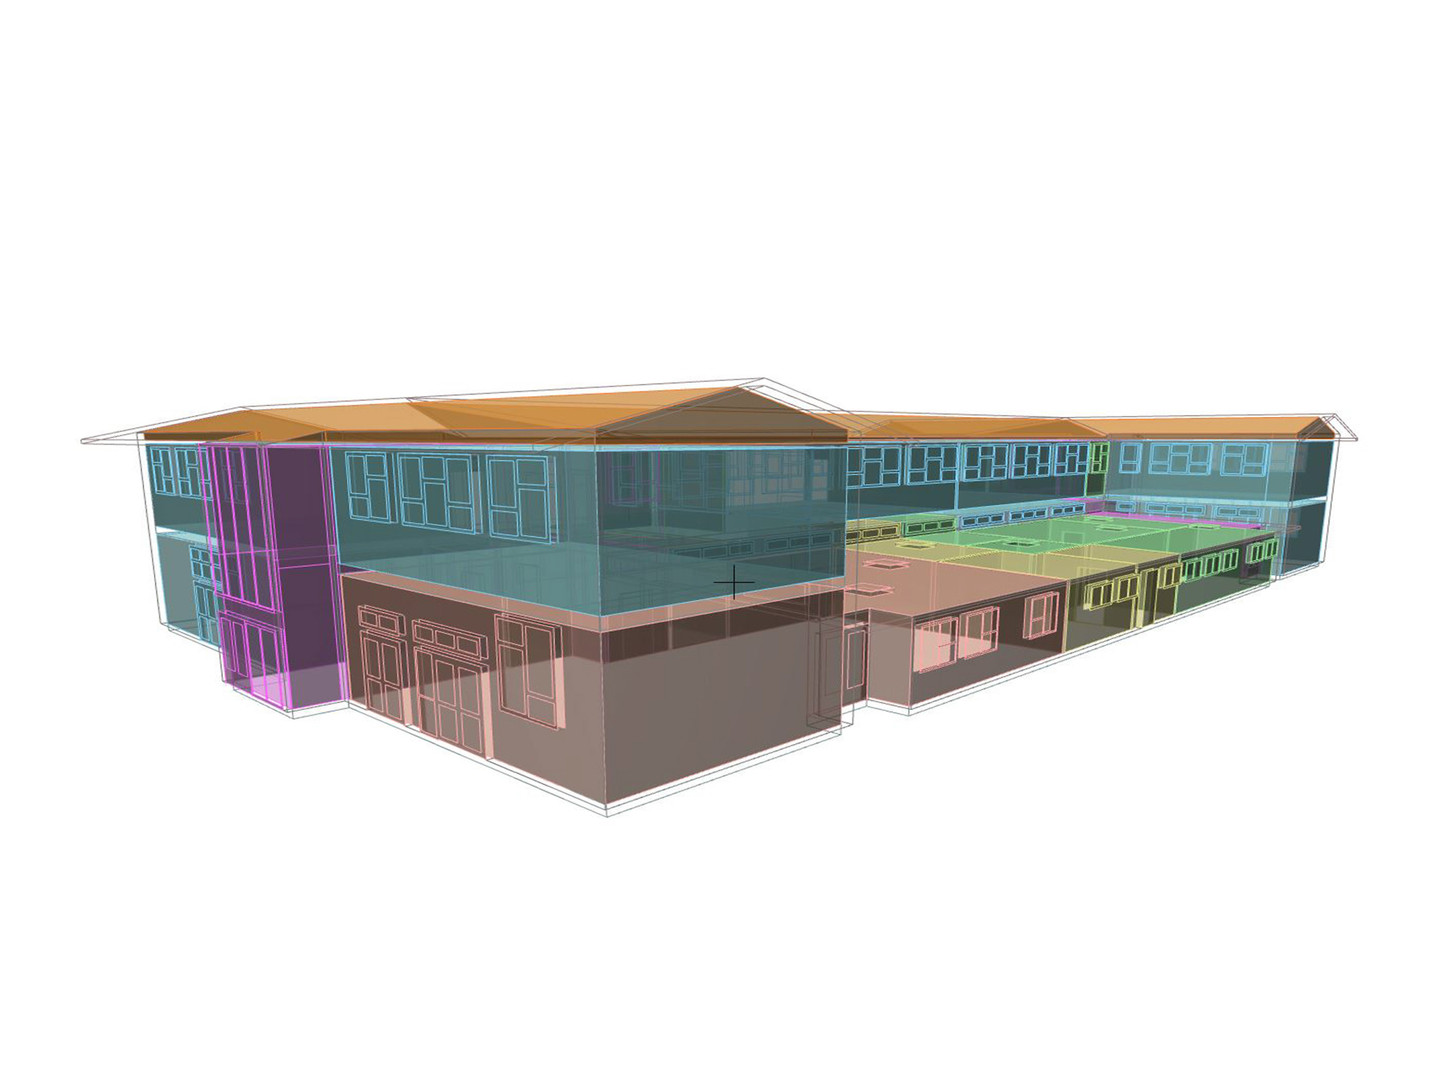 Makoura-College-1-Thermal-Modelling.jpg